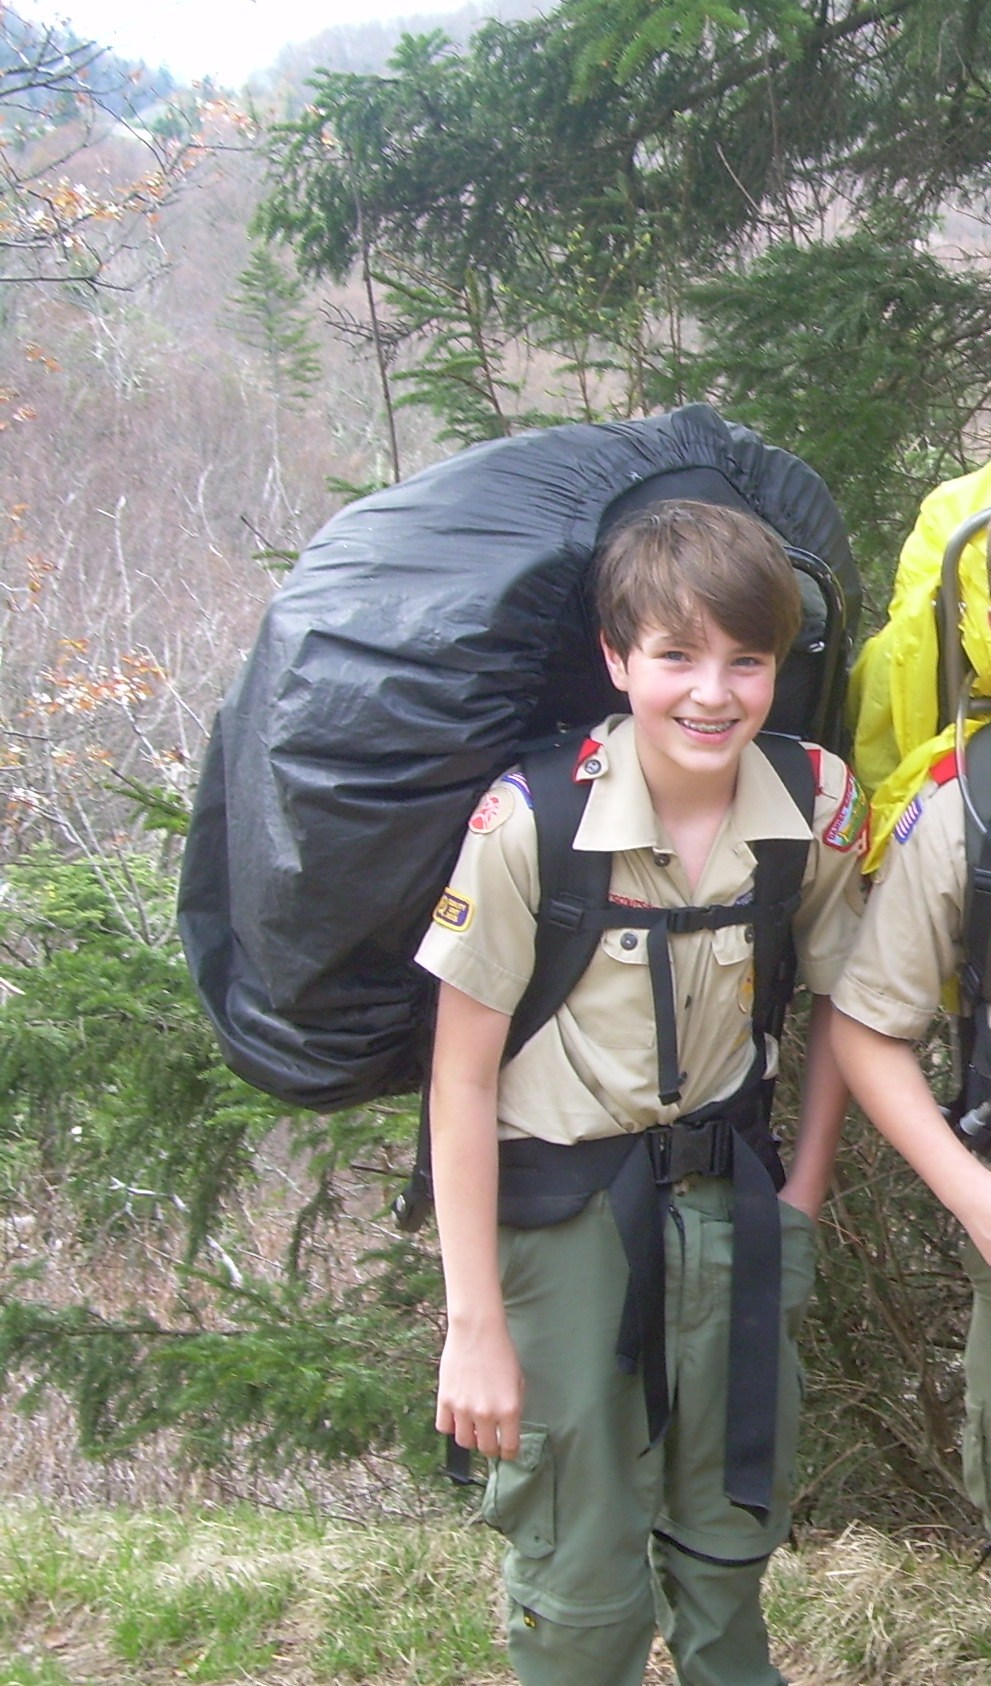 Andy in 7th grade backpacking with the BSA.